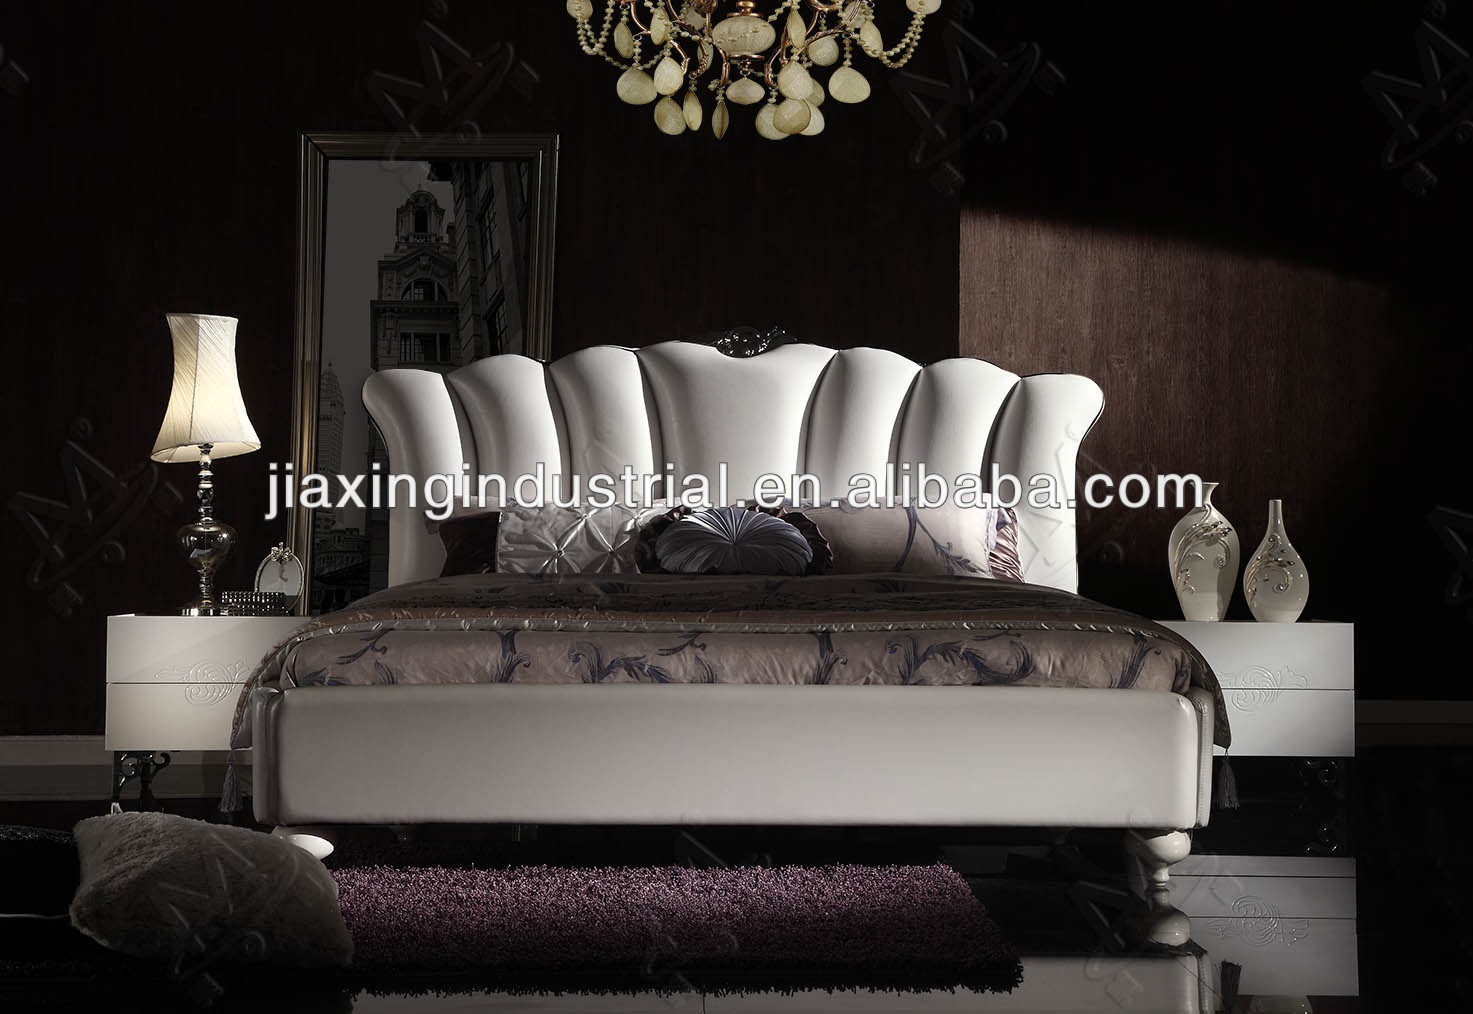 luxury latest modern design bed in 2014 / newest modern leather bed H1295